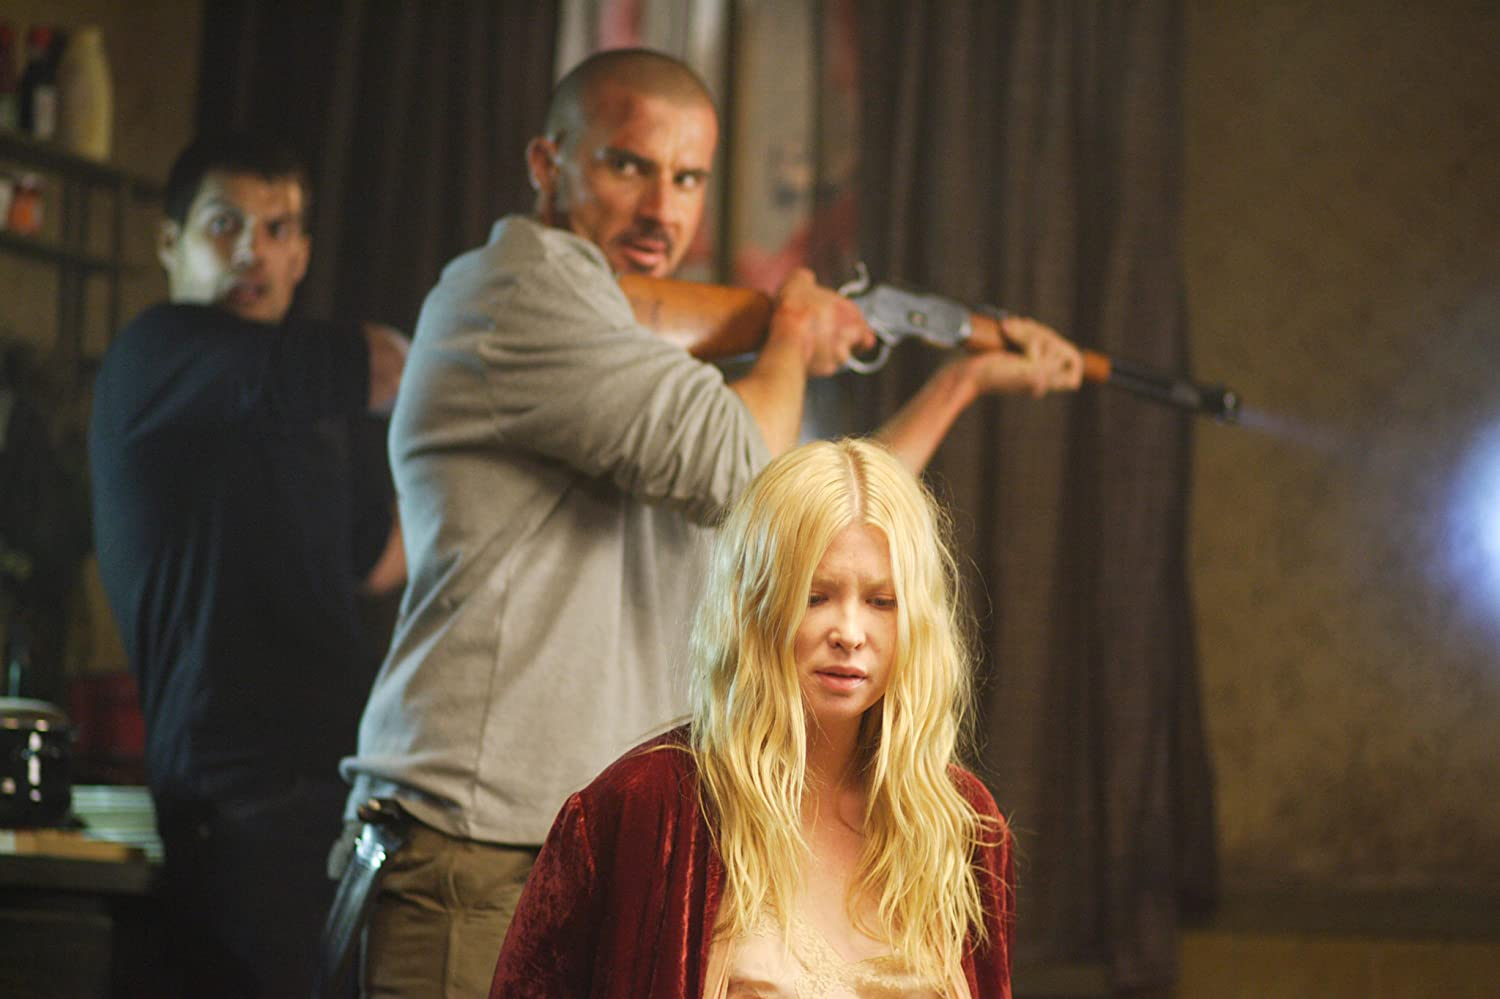 Henry Cavill, Dominic Purcell, and Emma Booth in Town Creek (2009)